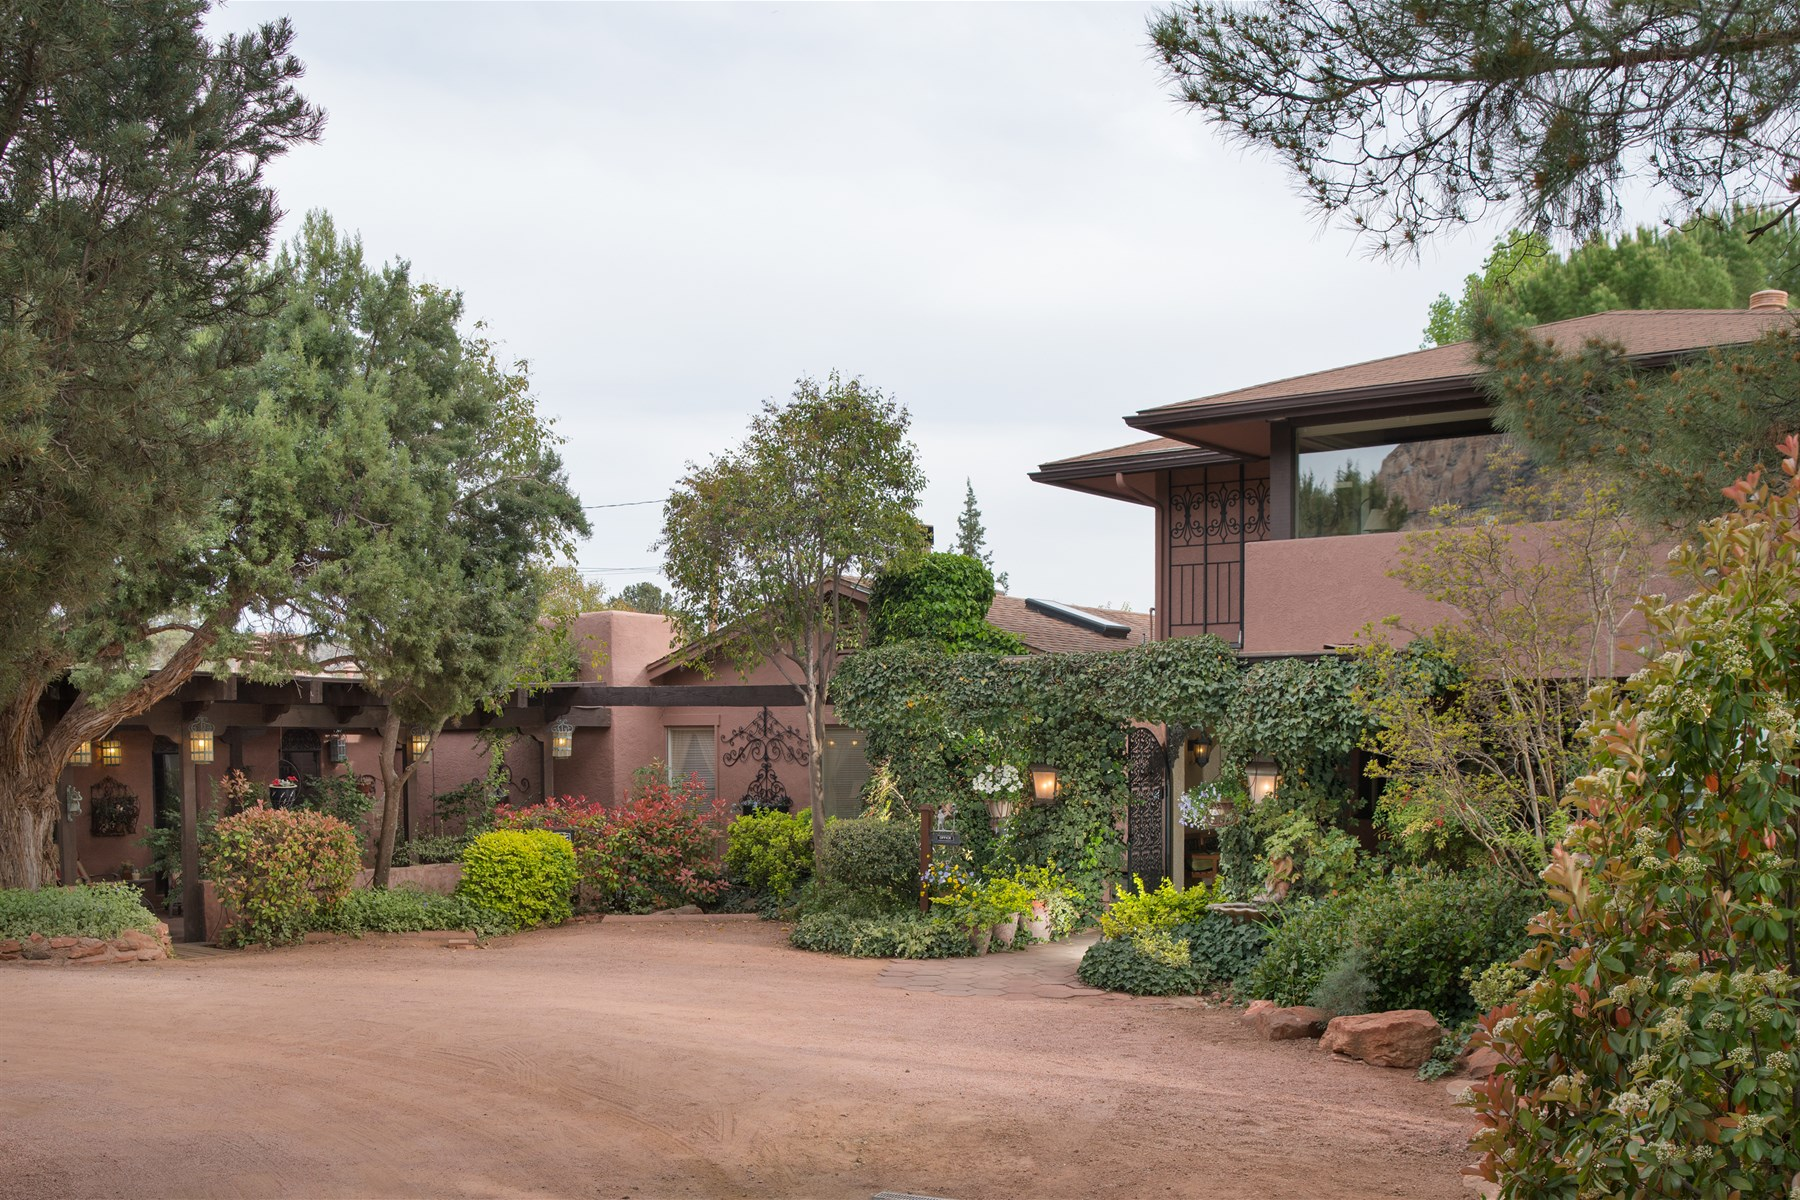 Casa Multifamiliar por un Venta en Award Winning Bed and Breakfast located in the heart of West Sedona 3085 W State Route 89a Sedona, Arizona, SEDON Estados Unidos